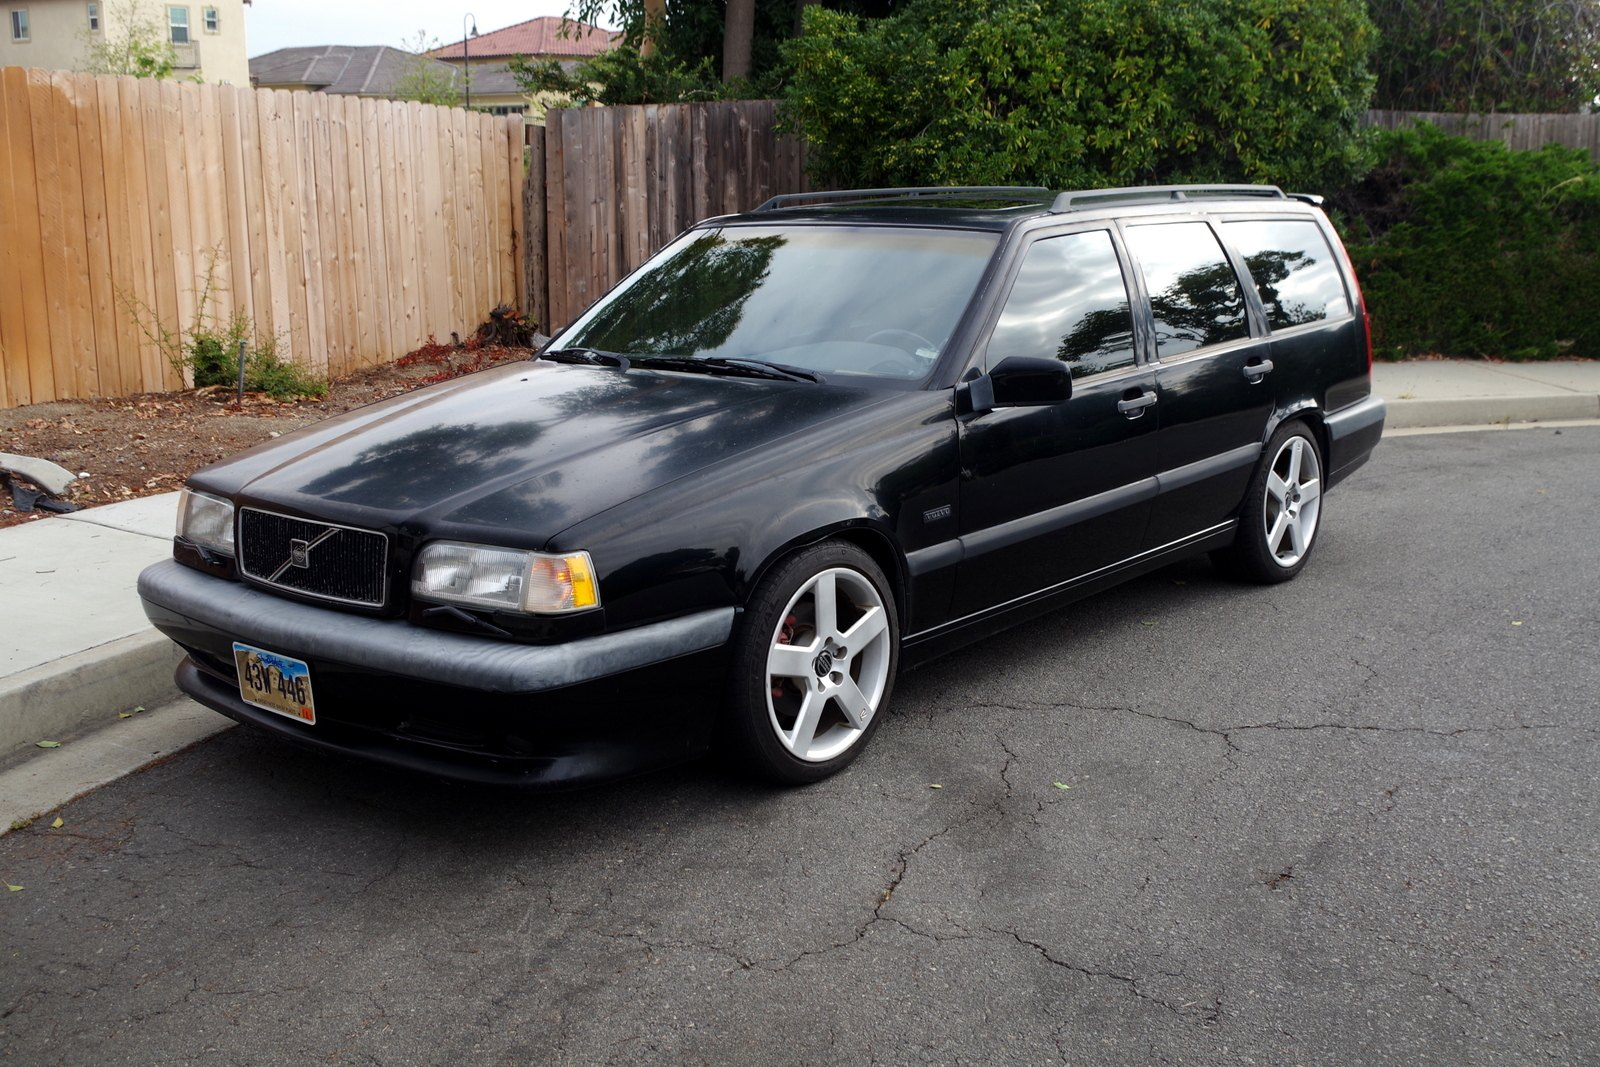 Volvo 850r Wagon With Pegasus Wheels 855 Turbo 2000 Group Buys And For Sale Feed Volvospeed Forums